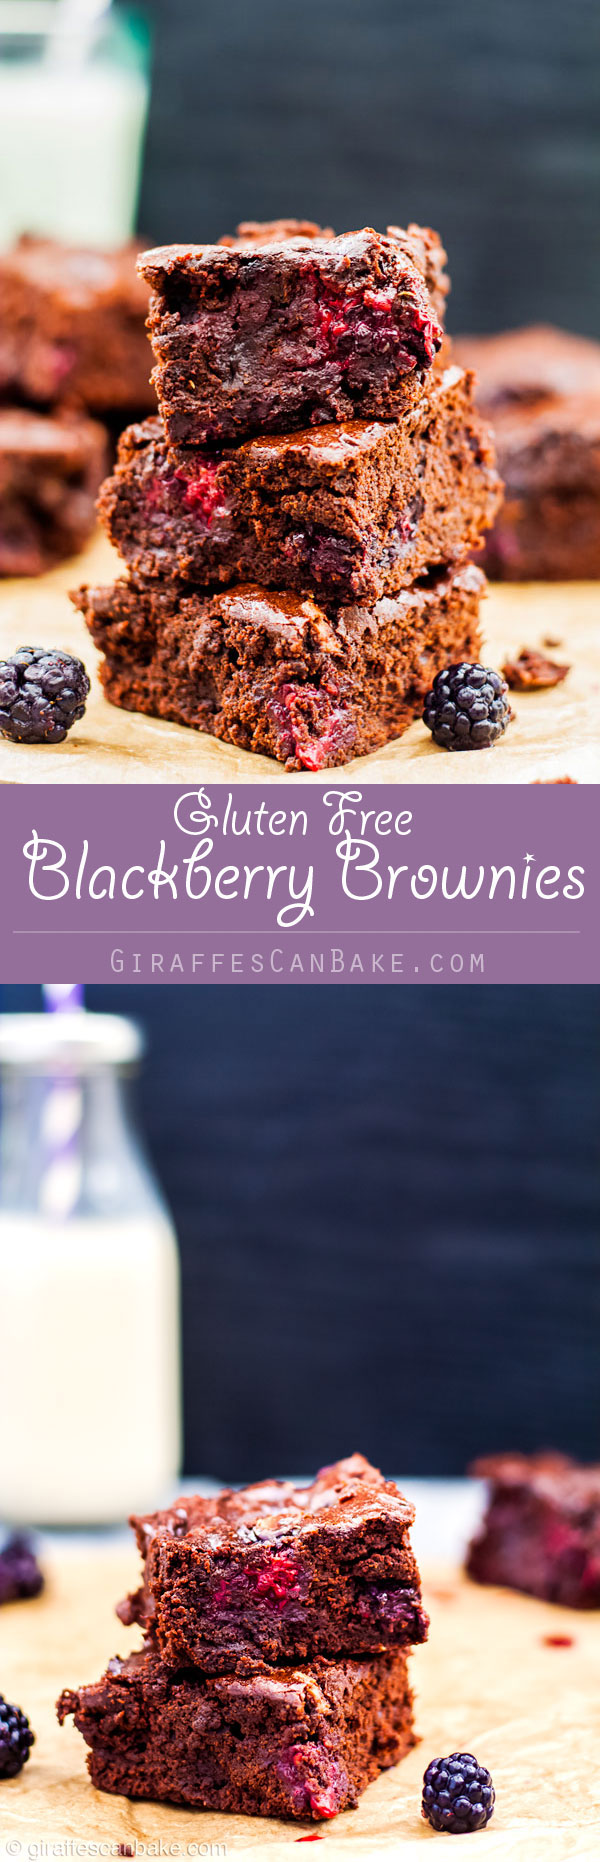 These totally fudgey, gooey, decadent Gluten Free Blackberry Brownies are the ultimate chocolate fix. The rich, fudgy chocolate combined with bursts of sweet wild blackberries will have you coming back for more.  They're so easy to make, and no mixer is needed - so get your apron on and let's bake!